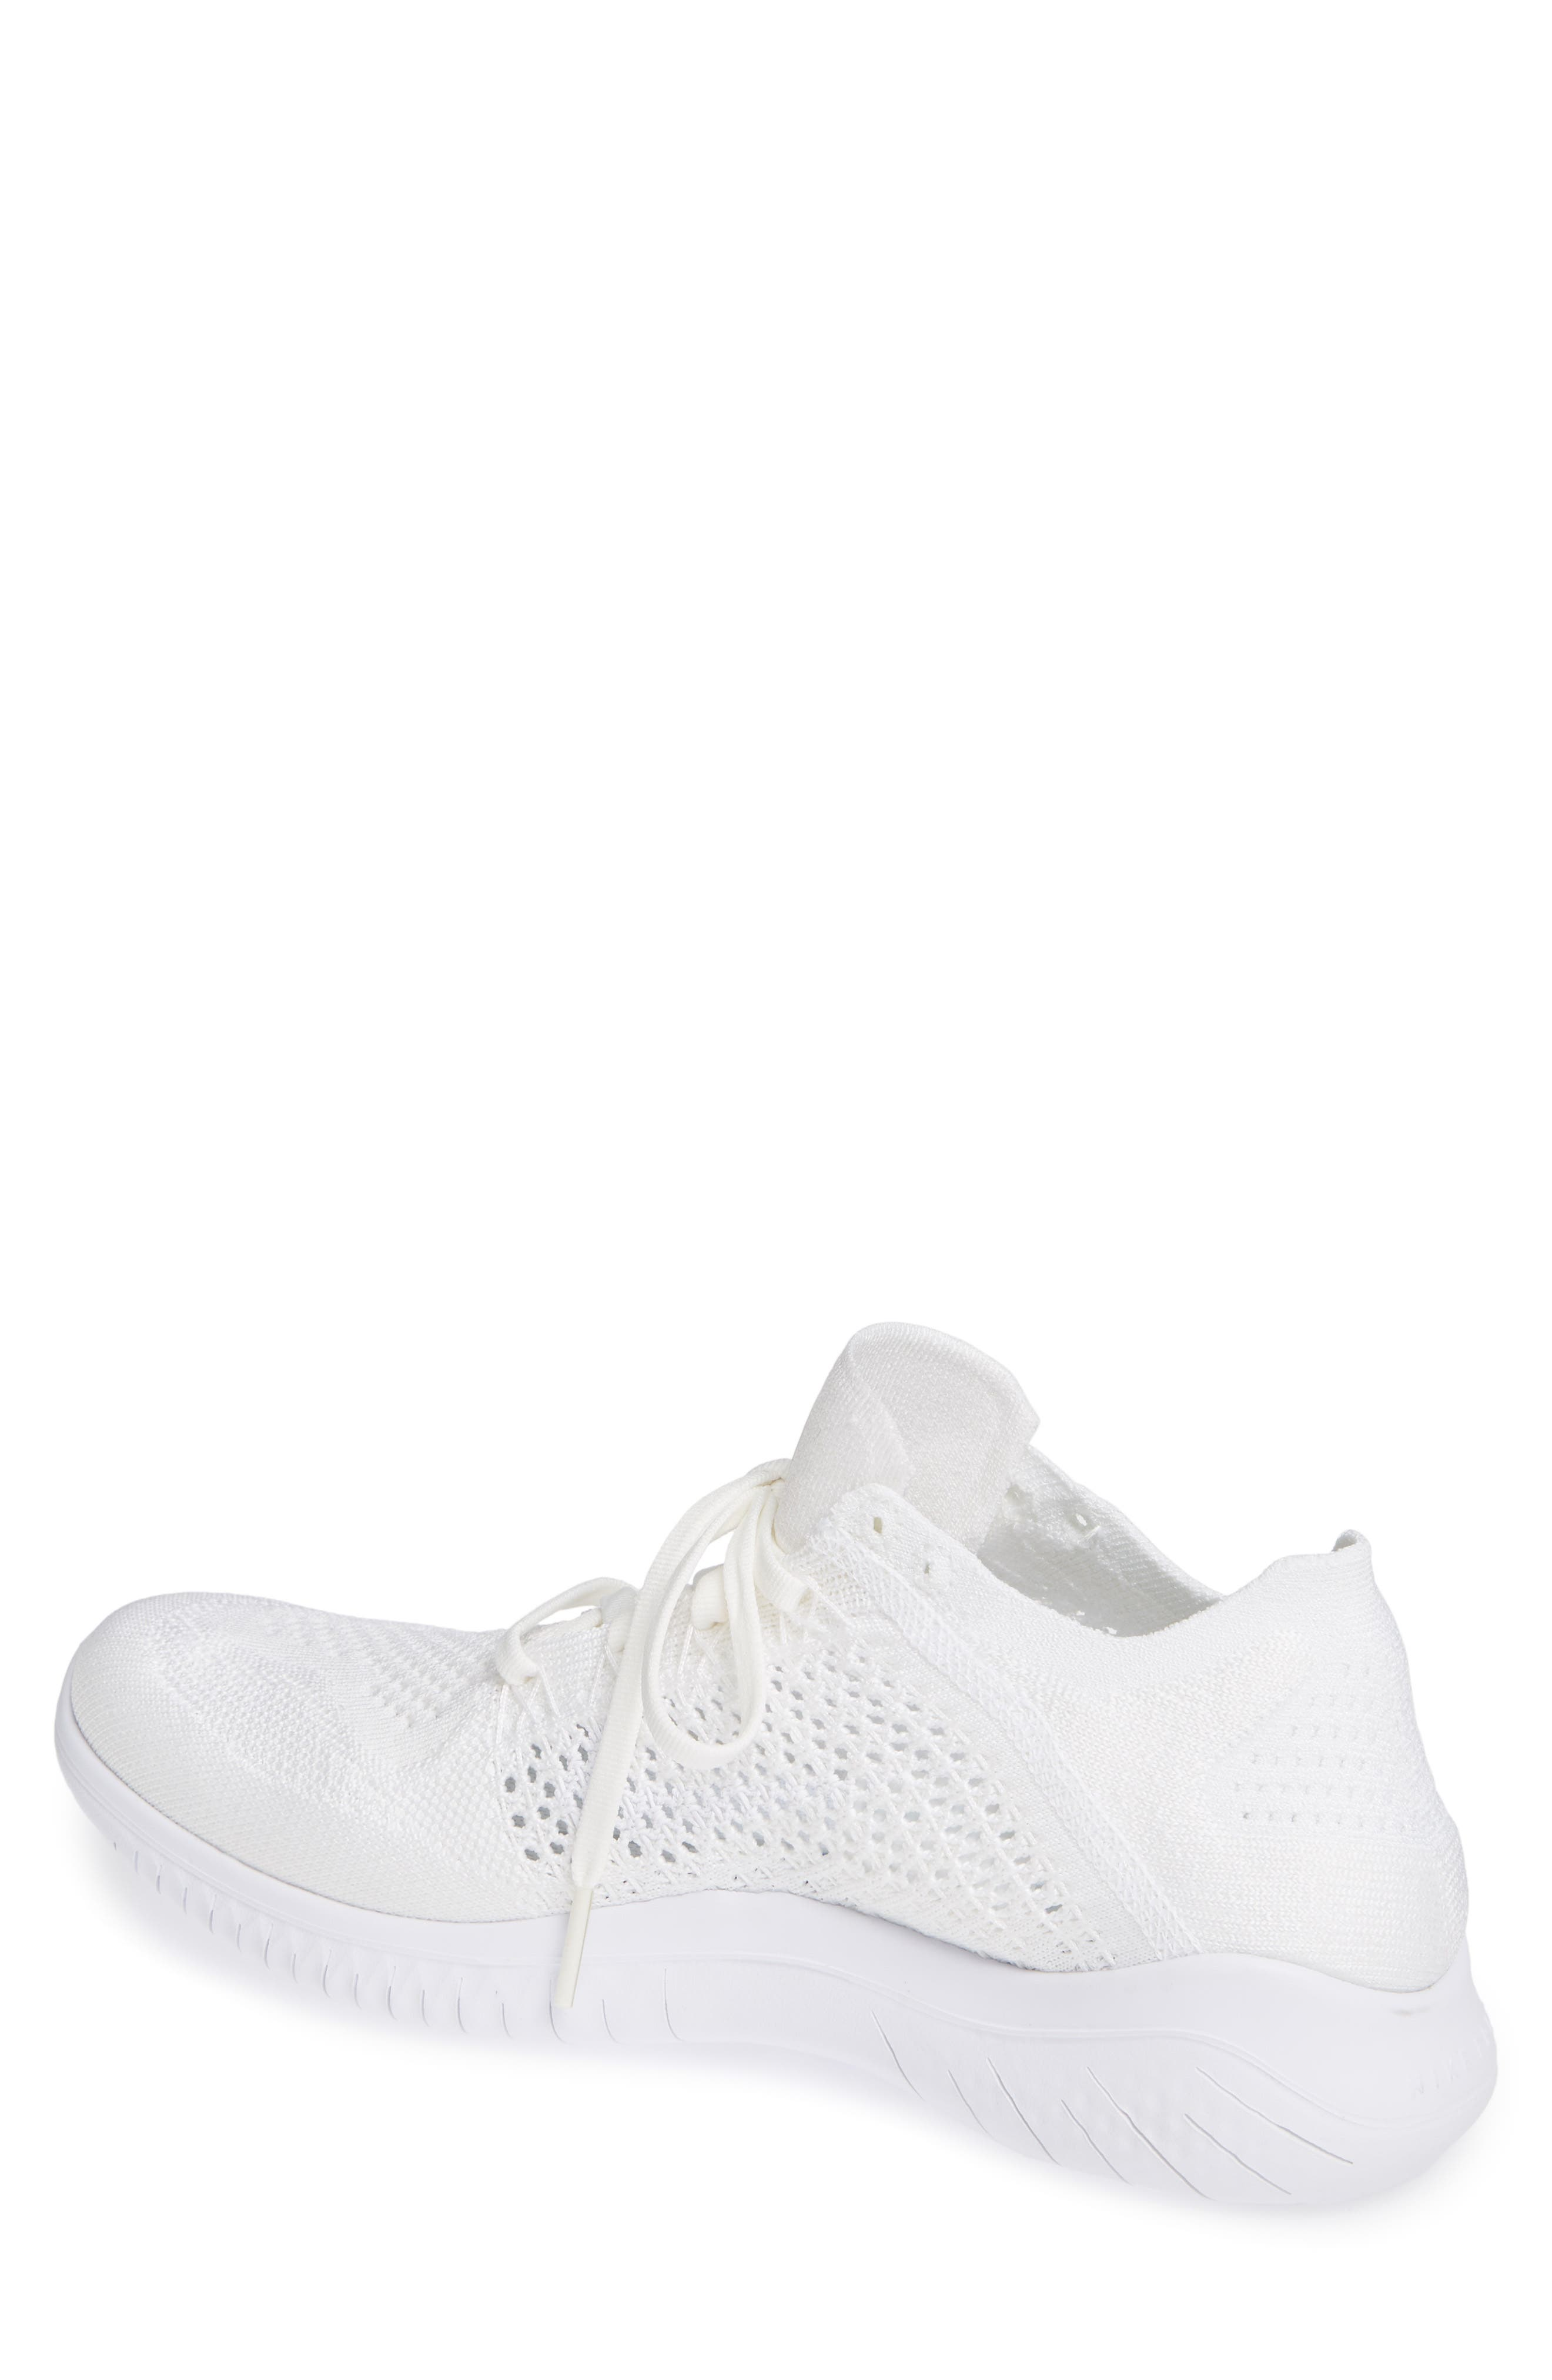 NIKE,                             Free RN Flyknit 2018 Running Shoe,                             Alternate thumbnail 2, color,                             WHITE/ WHITE